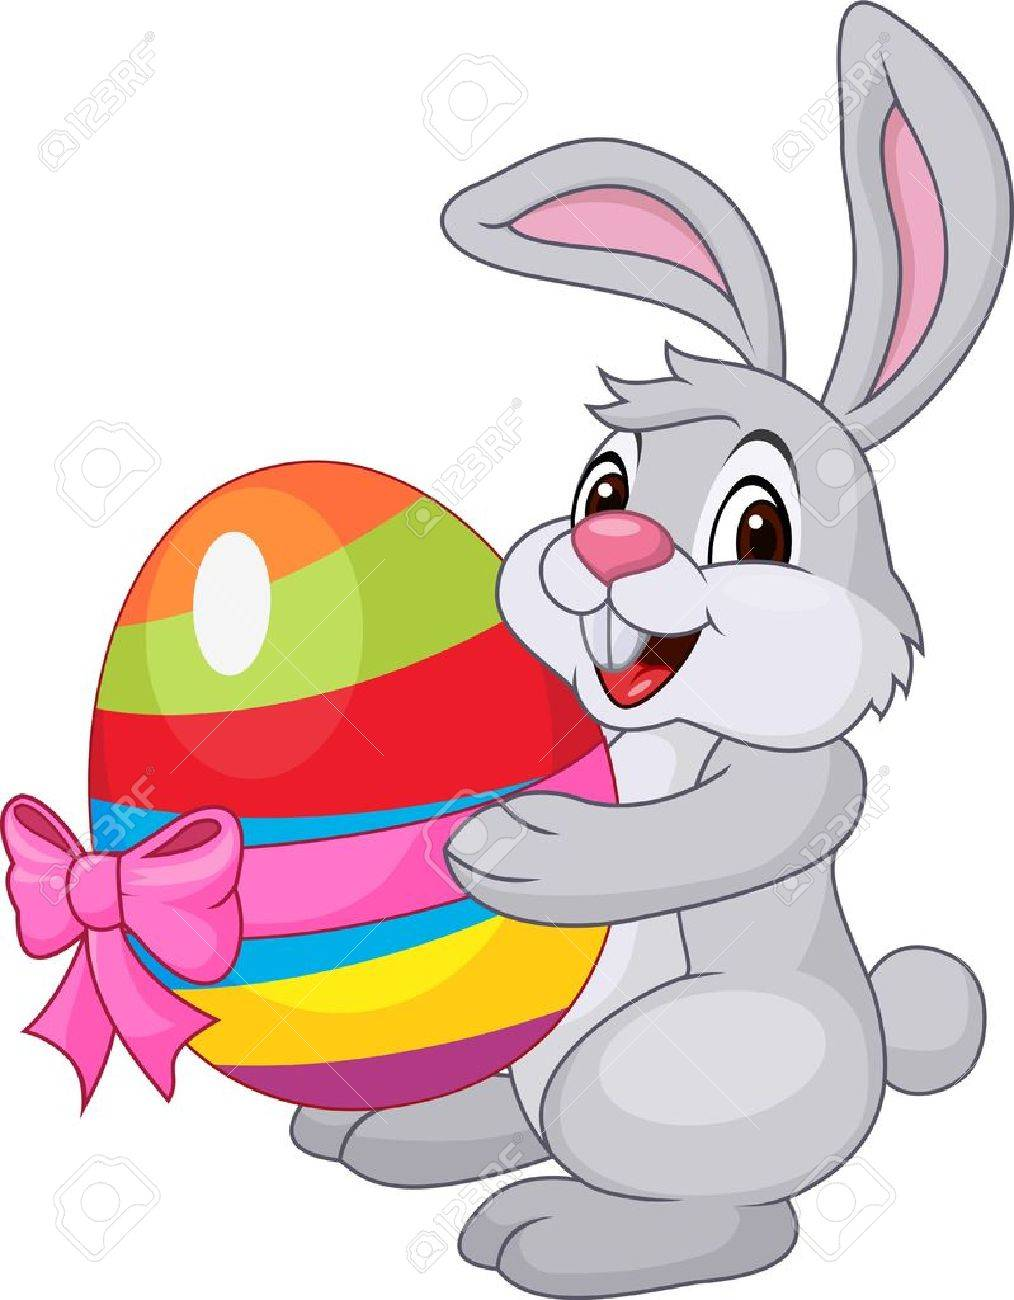 Cute rabbit with easter egg.